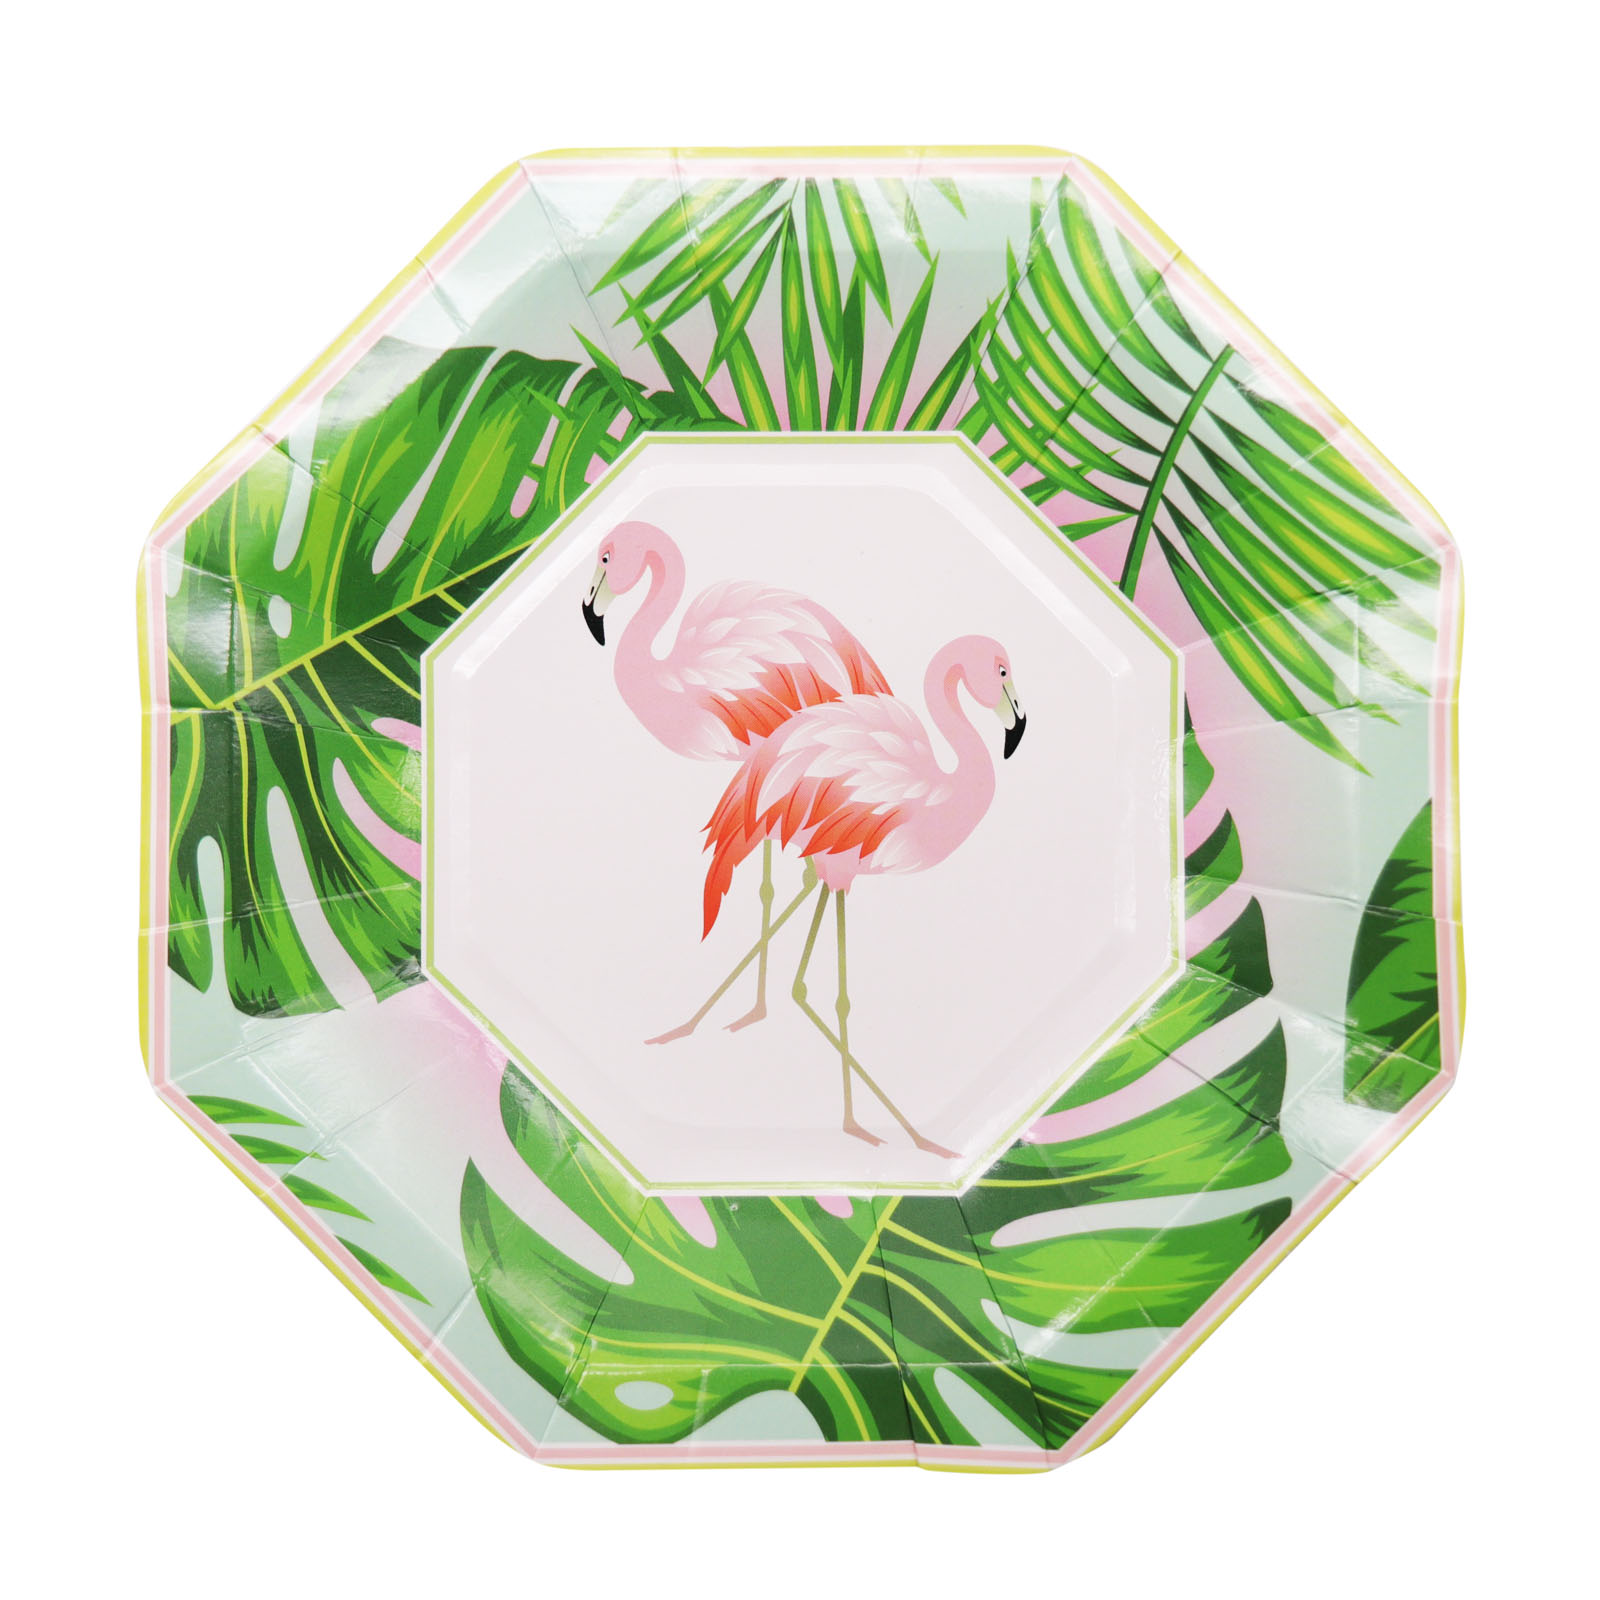 8 x Flamingo Round Disposable Paper Plates Summer Beach Party Tableware DIY